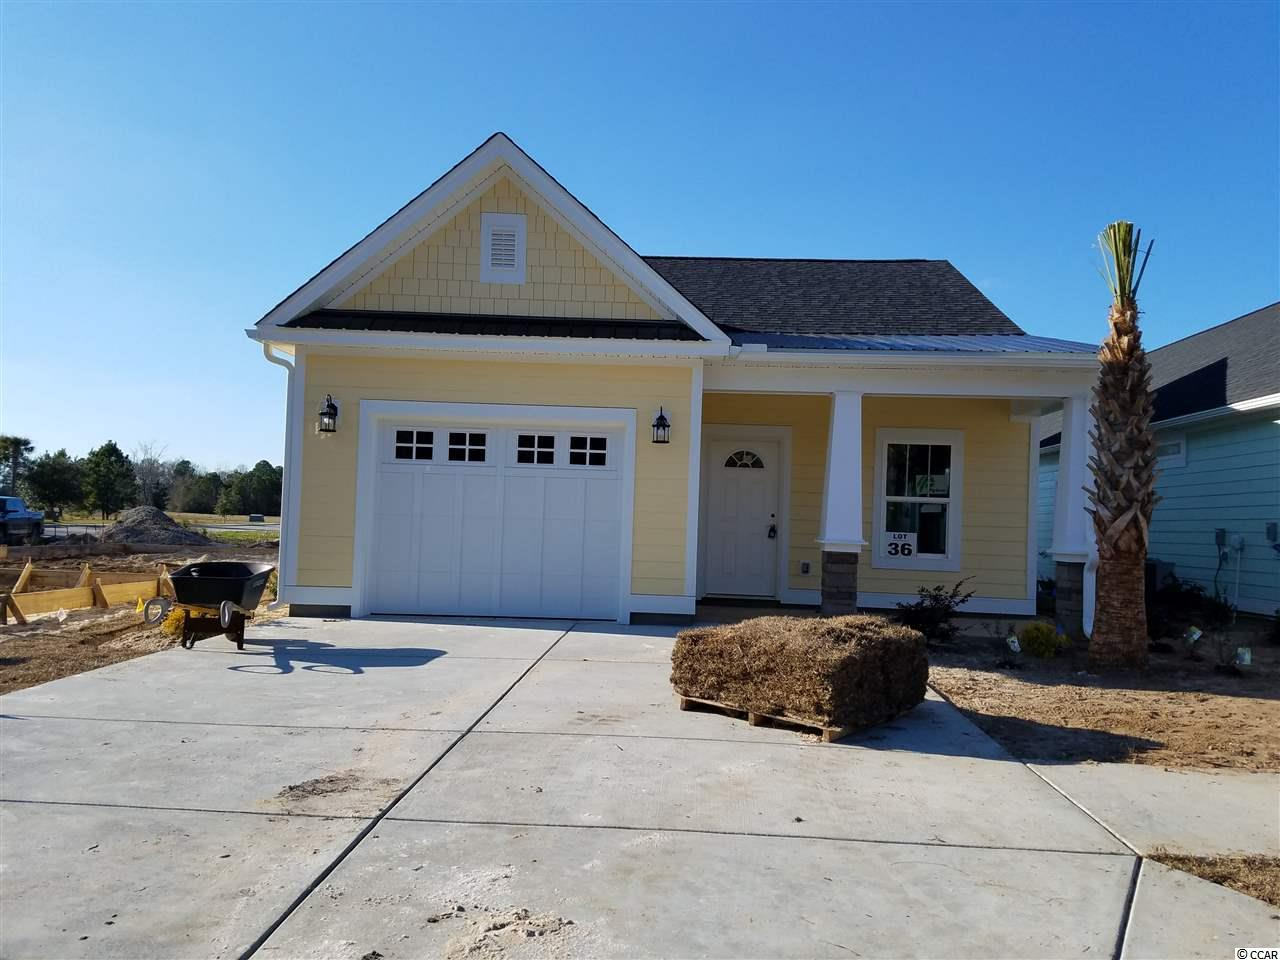 COLORFUL, CHARMING & CUSTOM BUILT!! For those seeking the best of both worlds, discover the historical quaint town of Conway located 20 miles of the beach and excitement. Discover why Carsen's Ferry is the perfect fit for you and your family. Located just off 501 behind a scenic lake, this master planned community features attractive well-lit streets and sidewalks, beautifully designed streetscapes with lush landscaping. This park like setting is ideal for early morning jogs or afternoon strolls. These finely detailed, Low Country Cottage has a gas range, on demand gas hot water, gas heat, brick accents, bright coastal color palettes,and front porches perfect for that fine old lost art of visiting with neighbors.